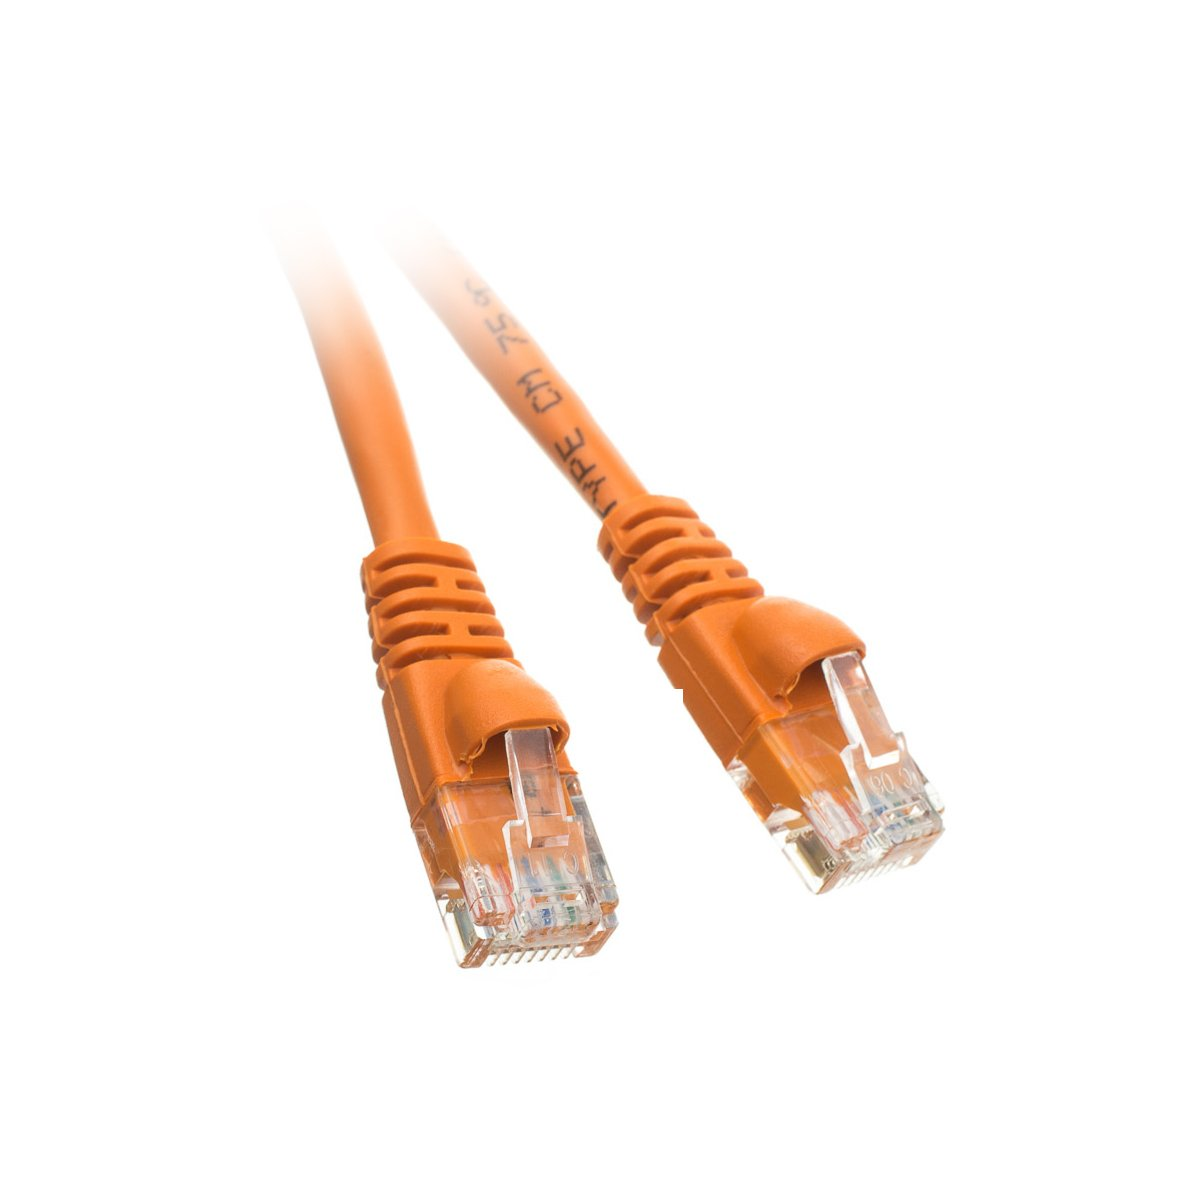 C&E 10-Feet Cat5e Snagless/Molded Boot Ethernet Patch Cable, 20-Pack - Orange (CNE48205) by C&E